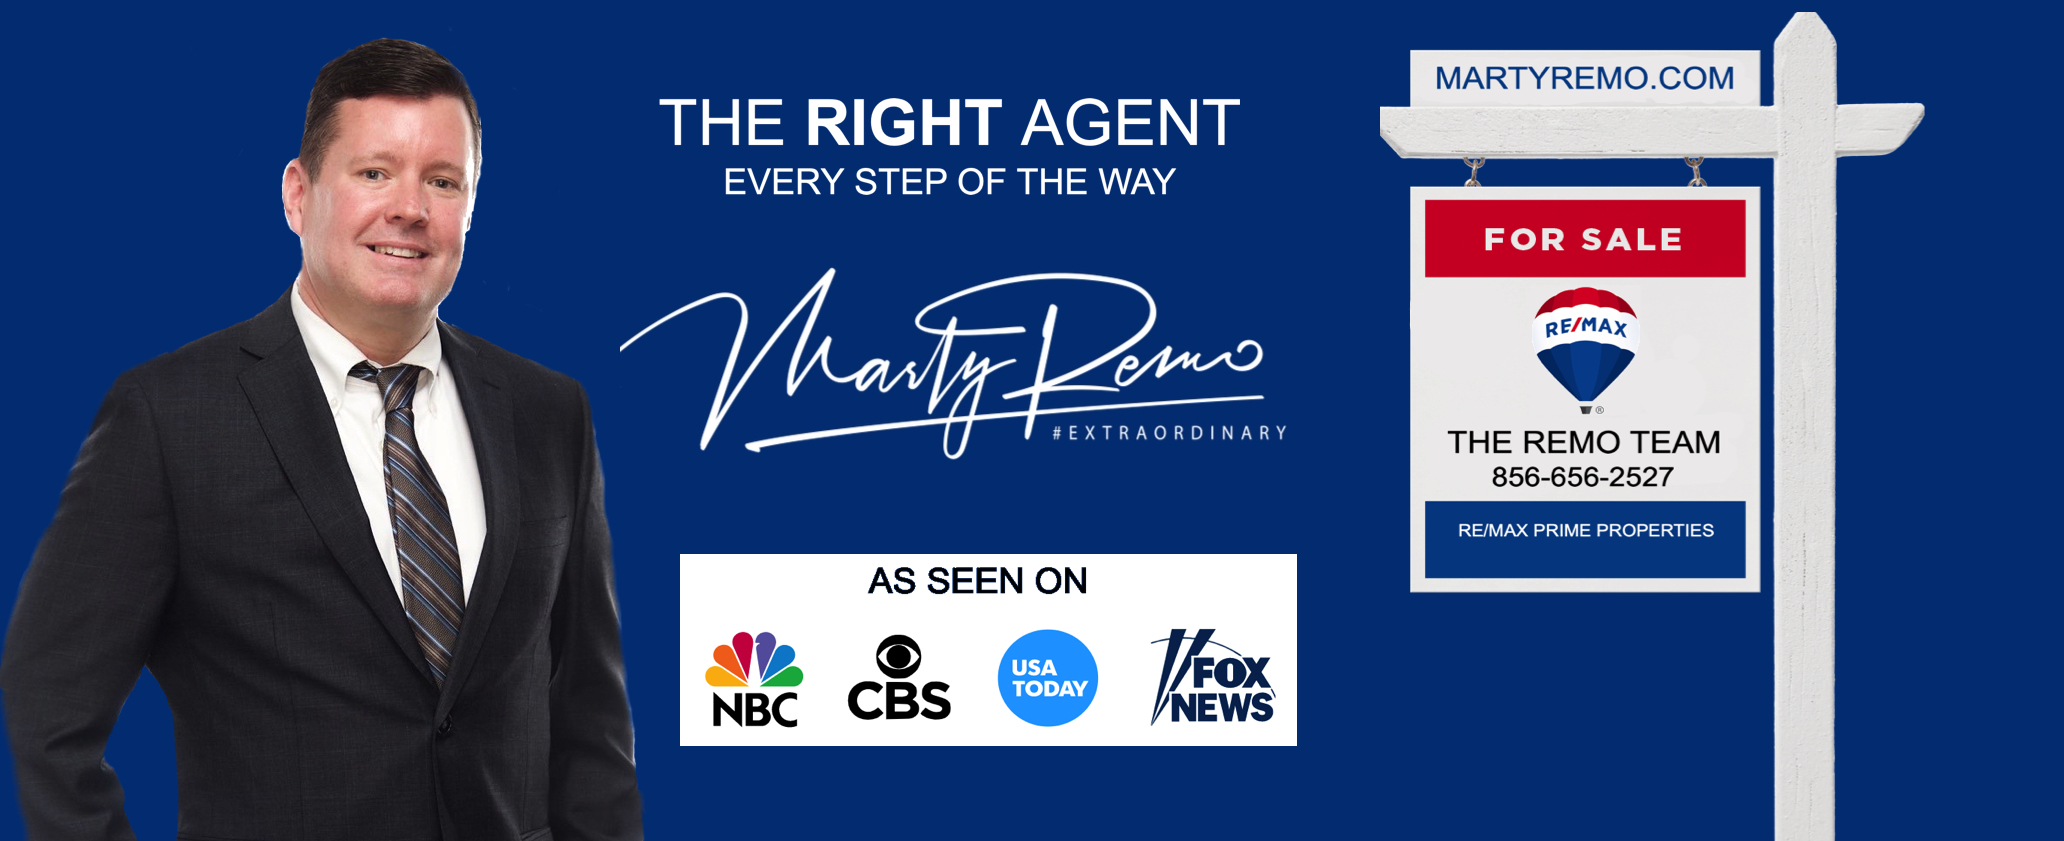 Marty Remo- RE/MAX- The Remo Team- Award Winning Real Estate Professional